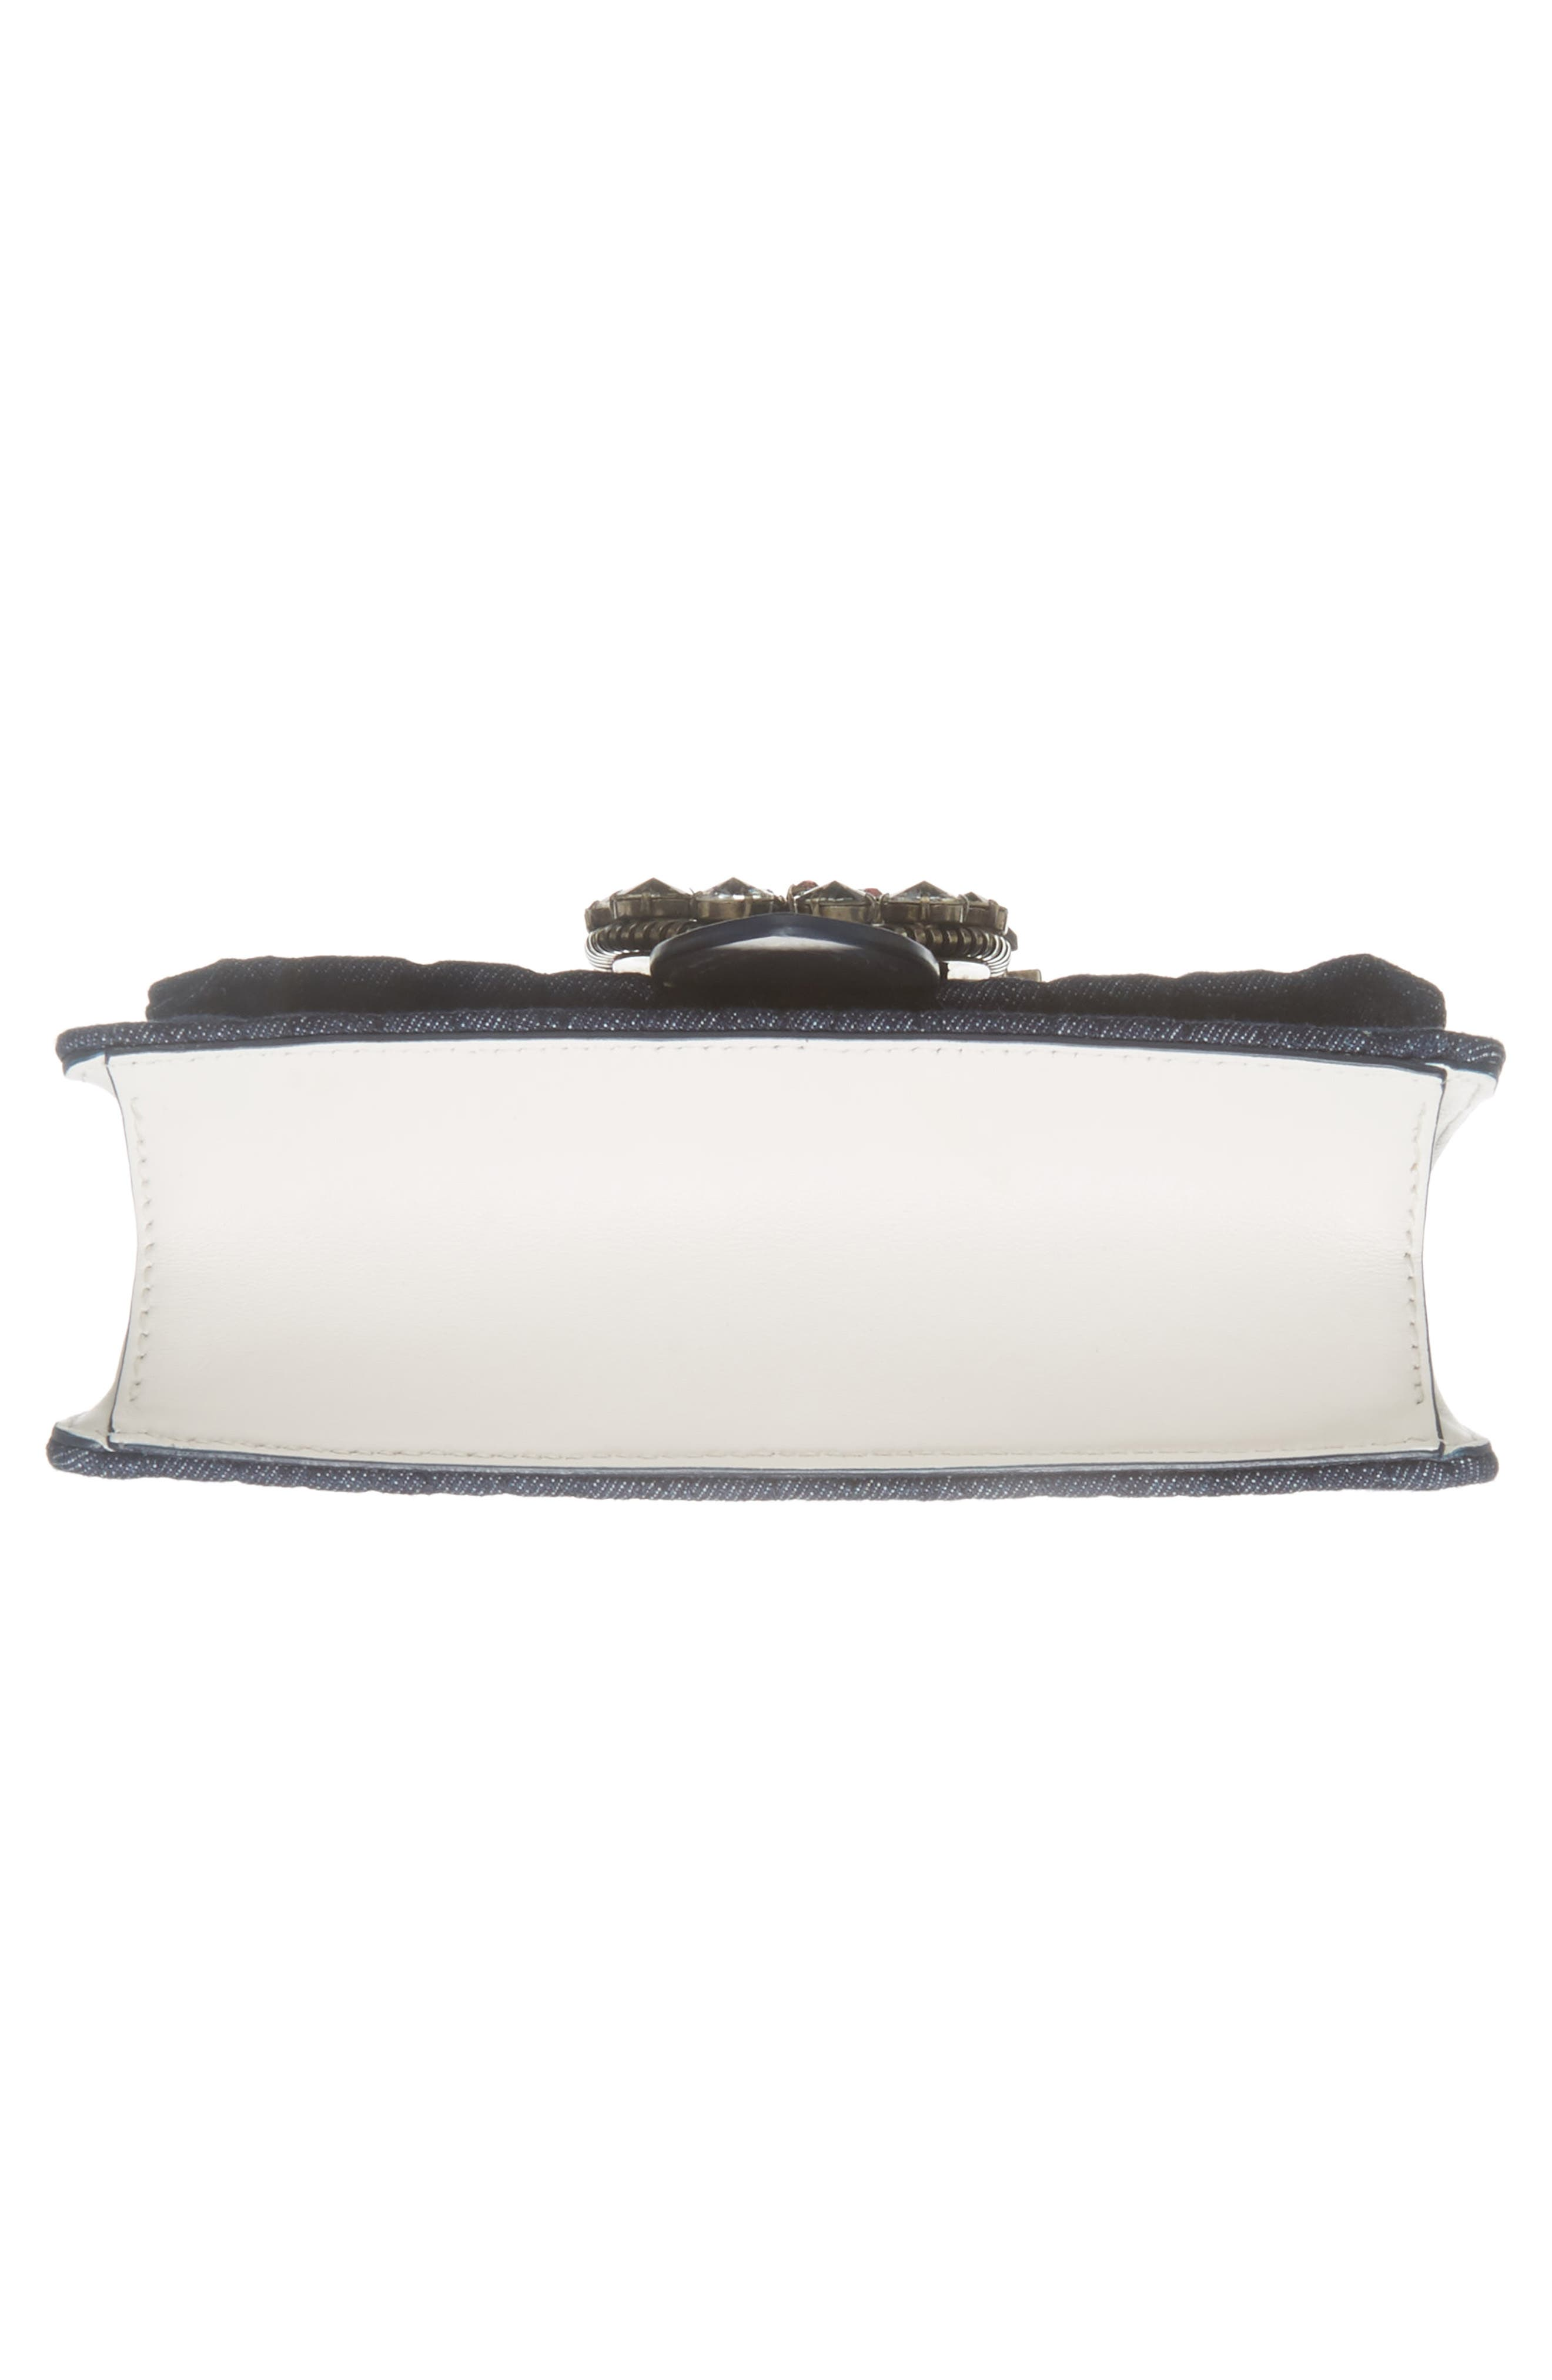 Matelassé Denim Embellished Shoulder Bag,                             Alternate thumbnail 6, color,                             Blu/ Bianco